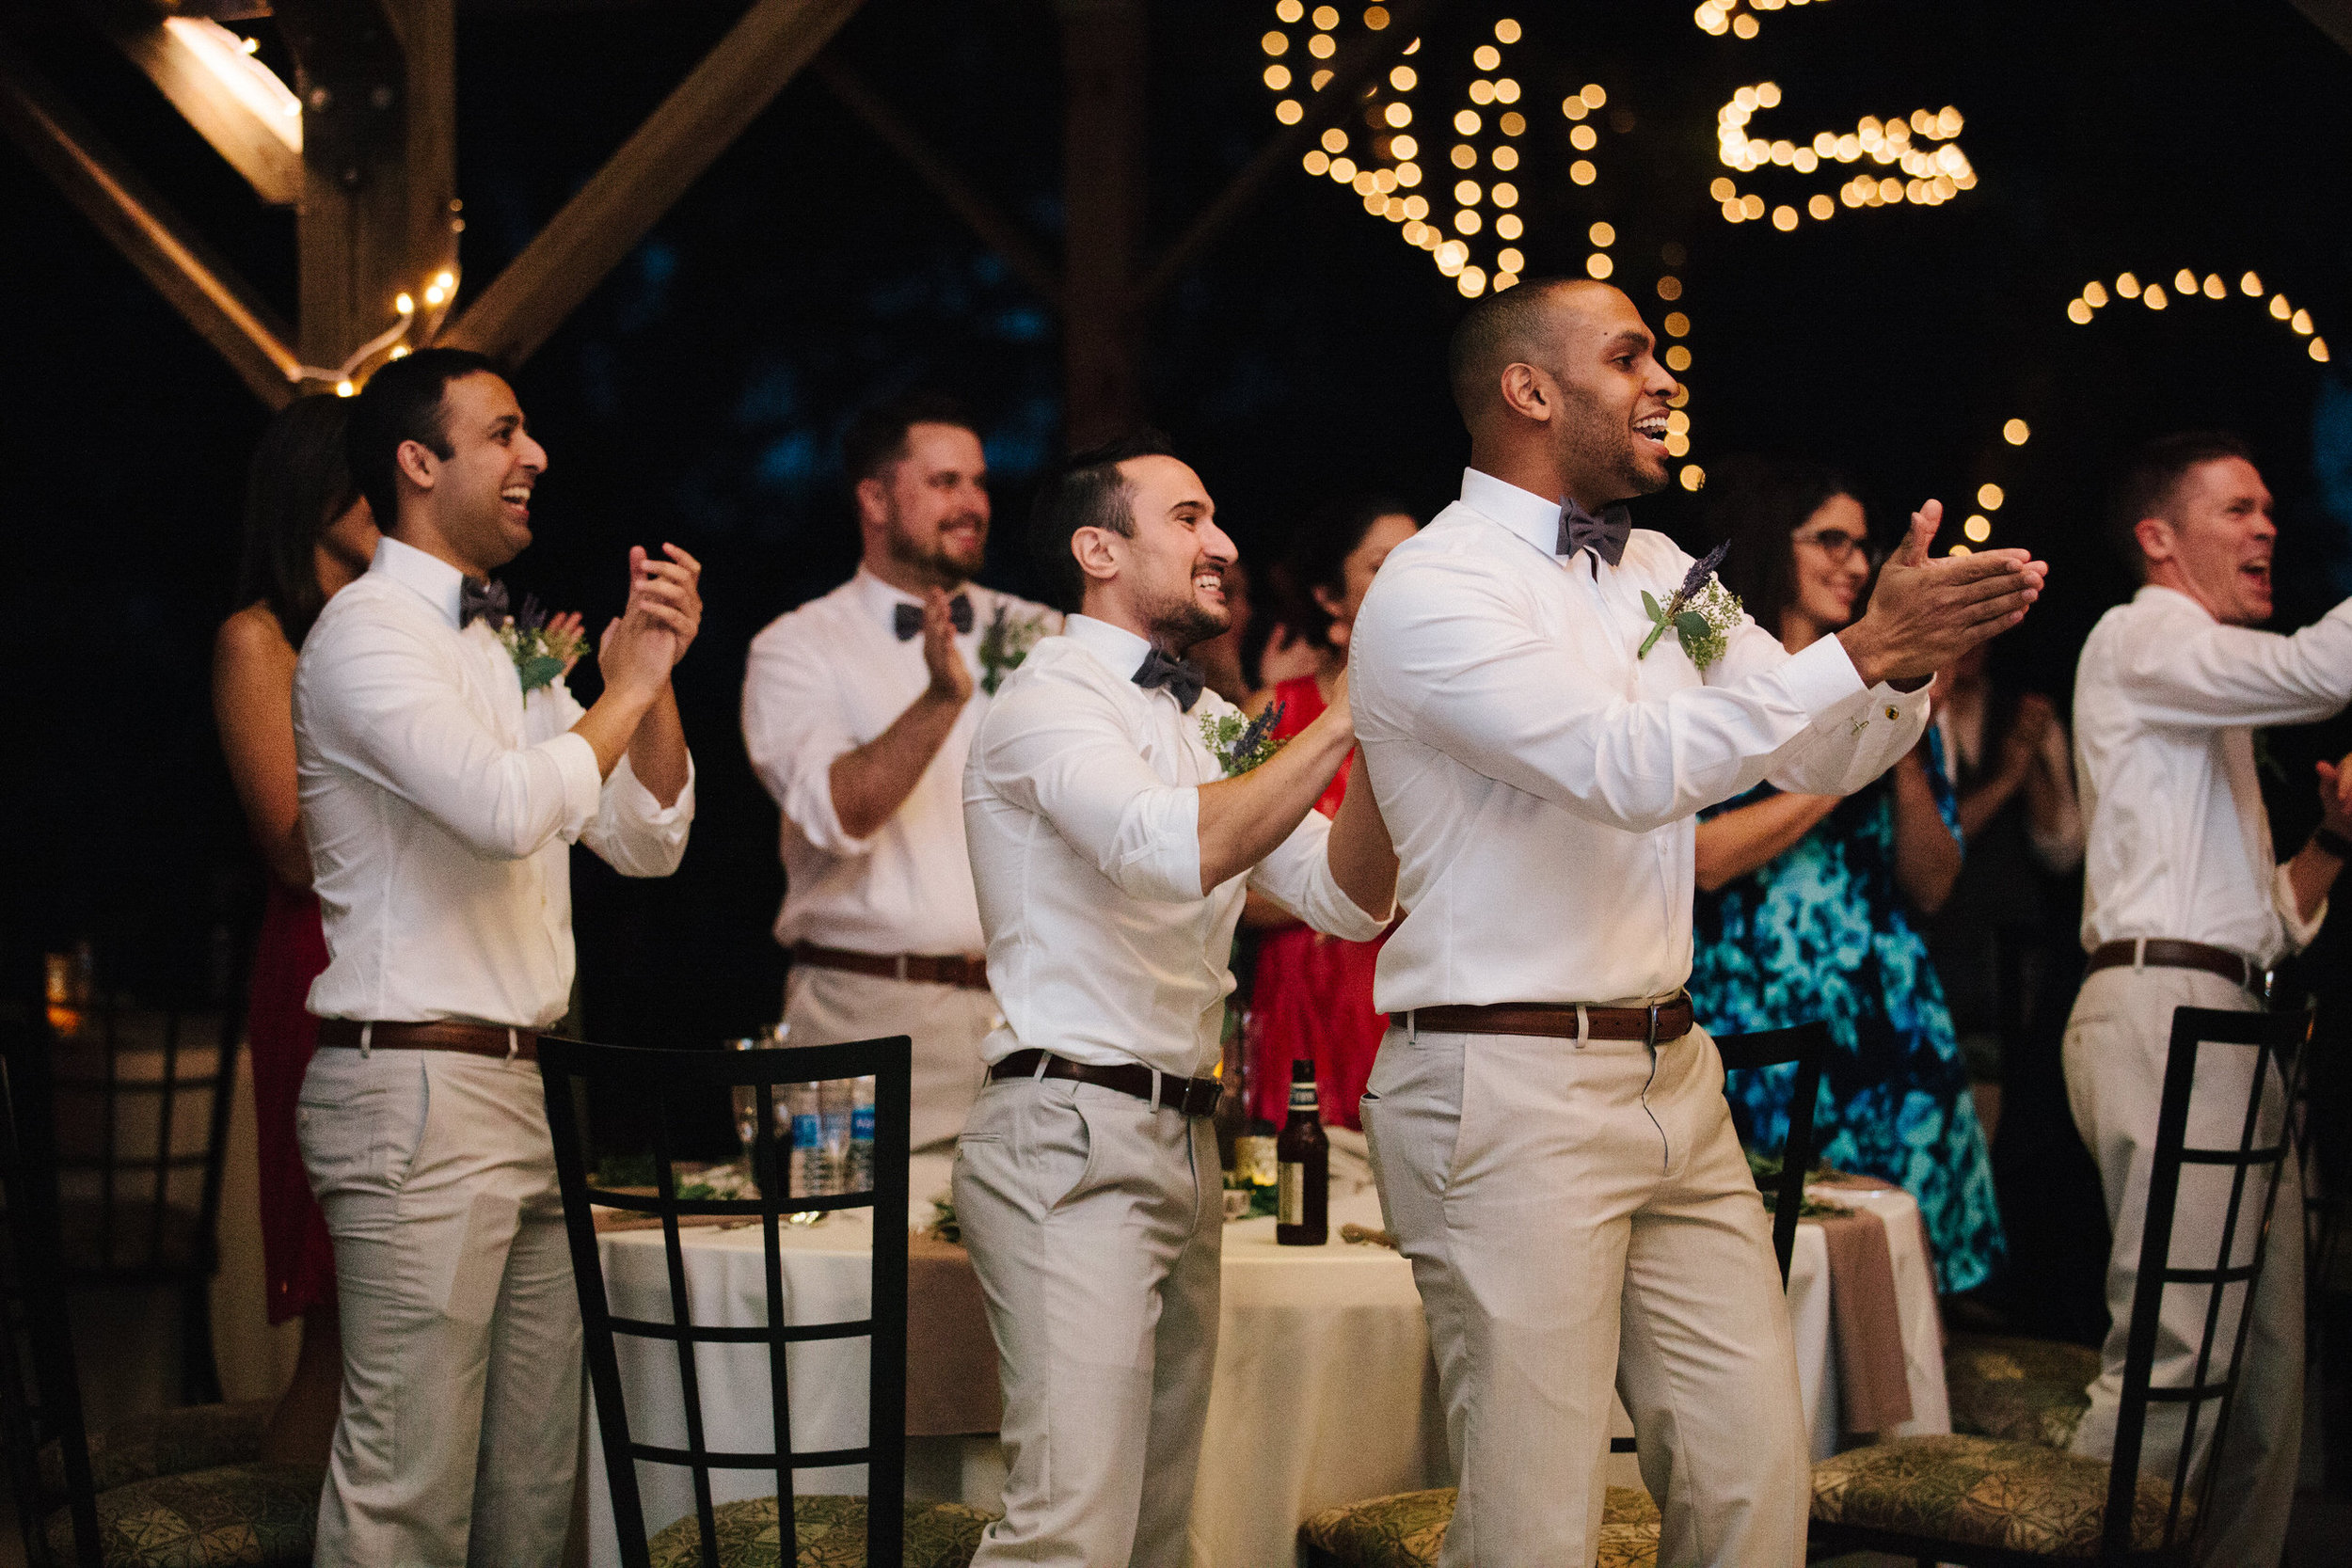 Wedding Reception Plant City Florida Photographer Benjamin Hewitt Photography